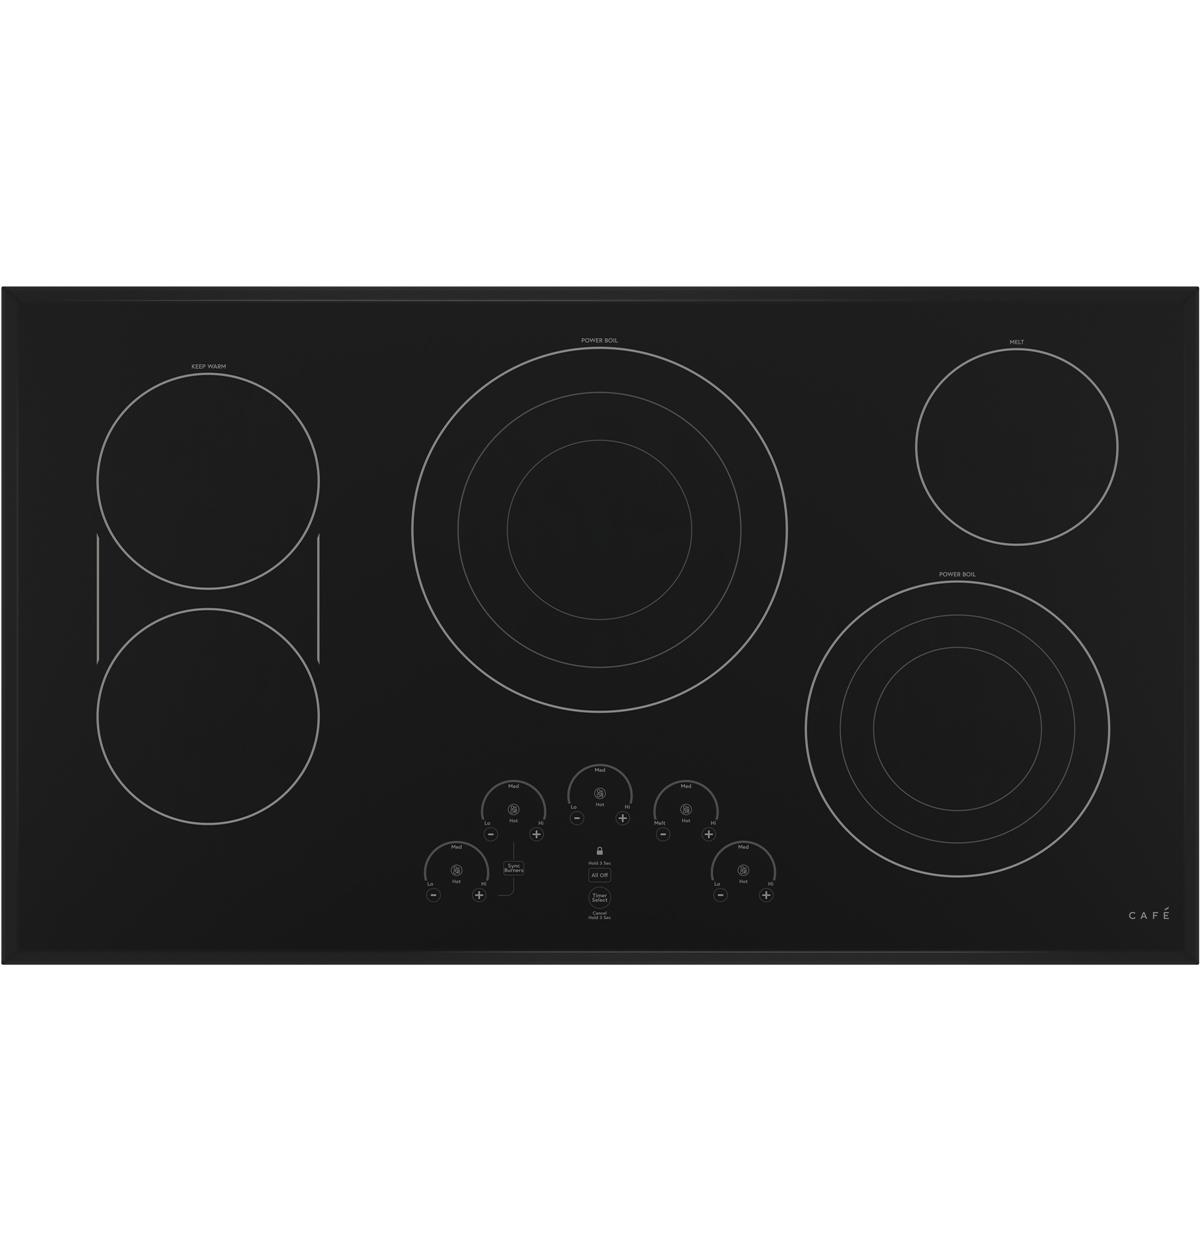 "Café™ 36"" Built-In Touch Control Electric Cooktop"